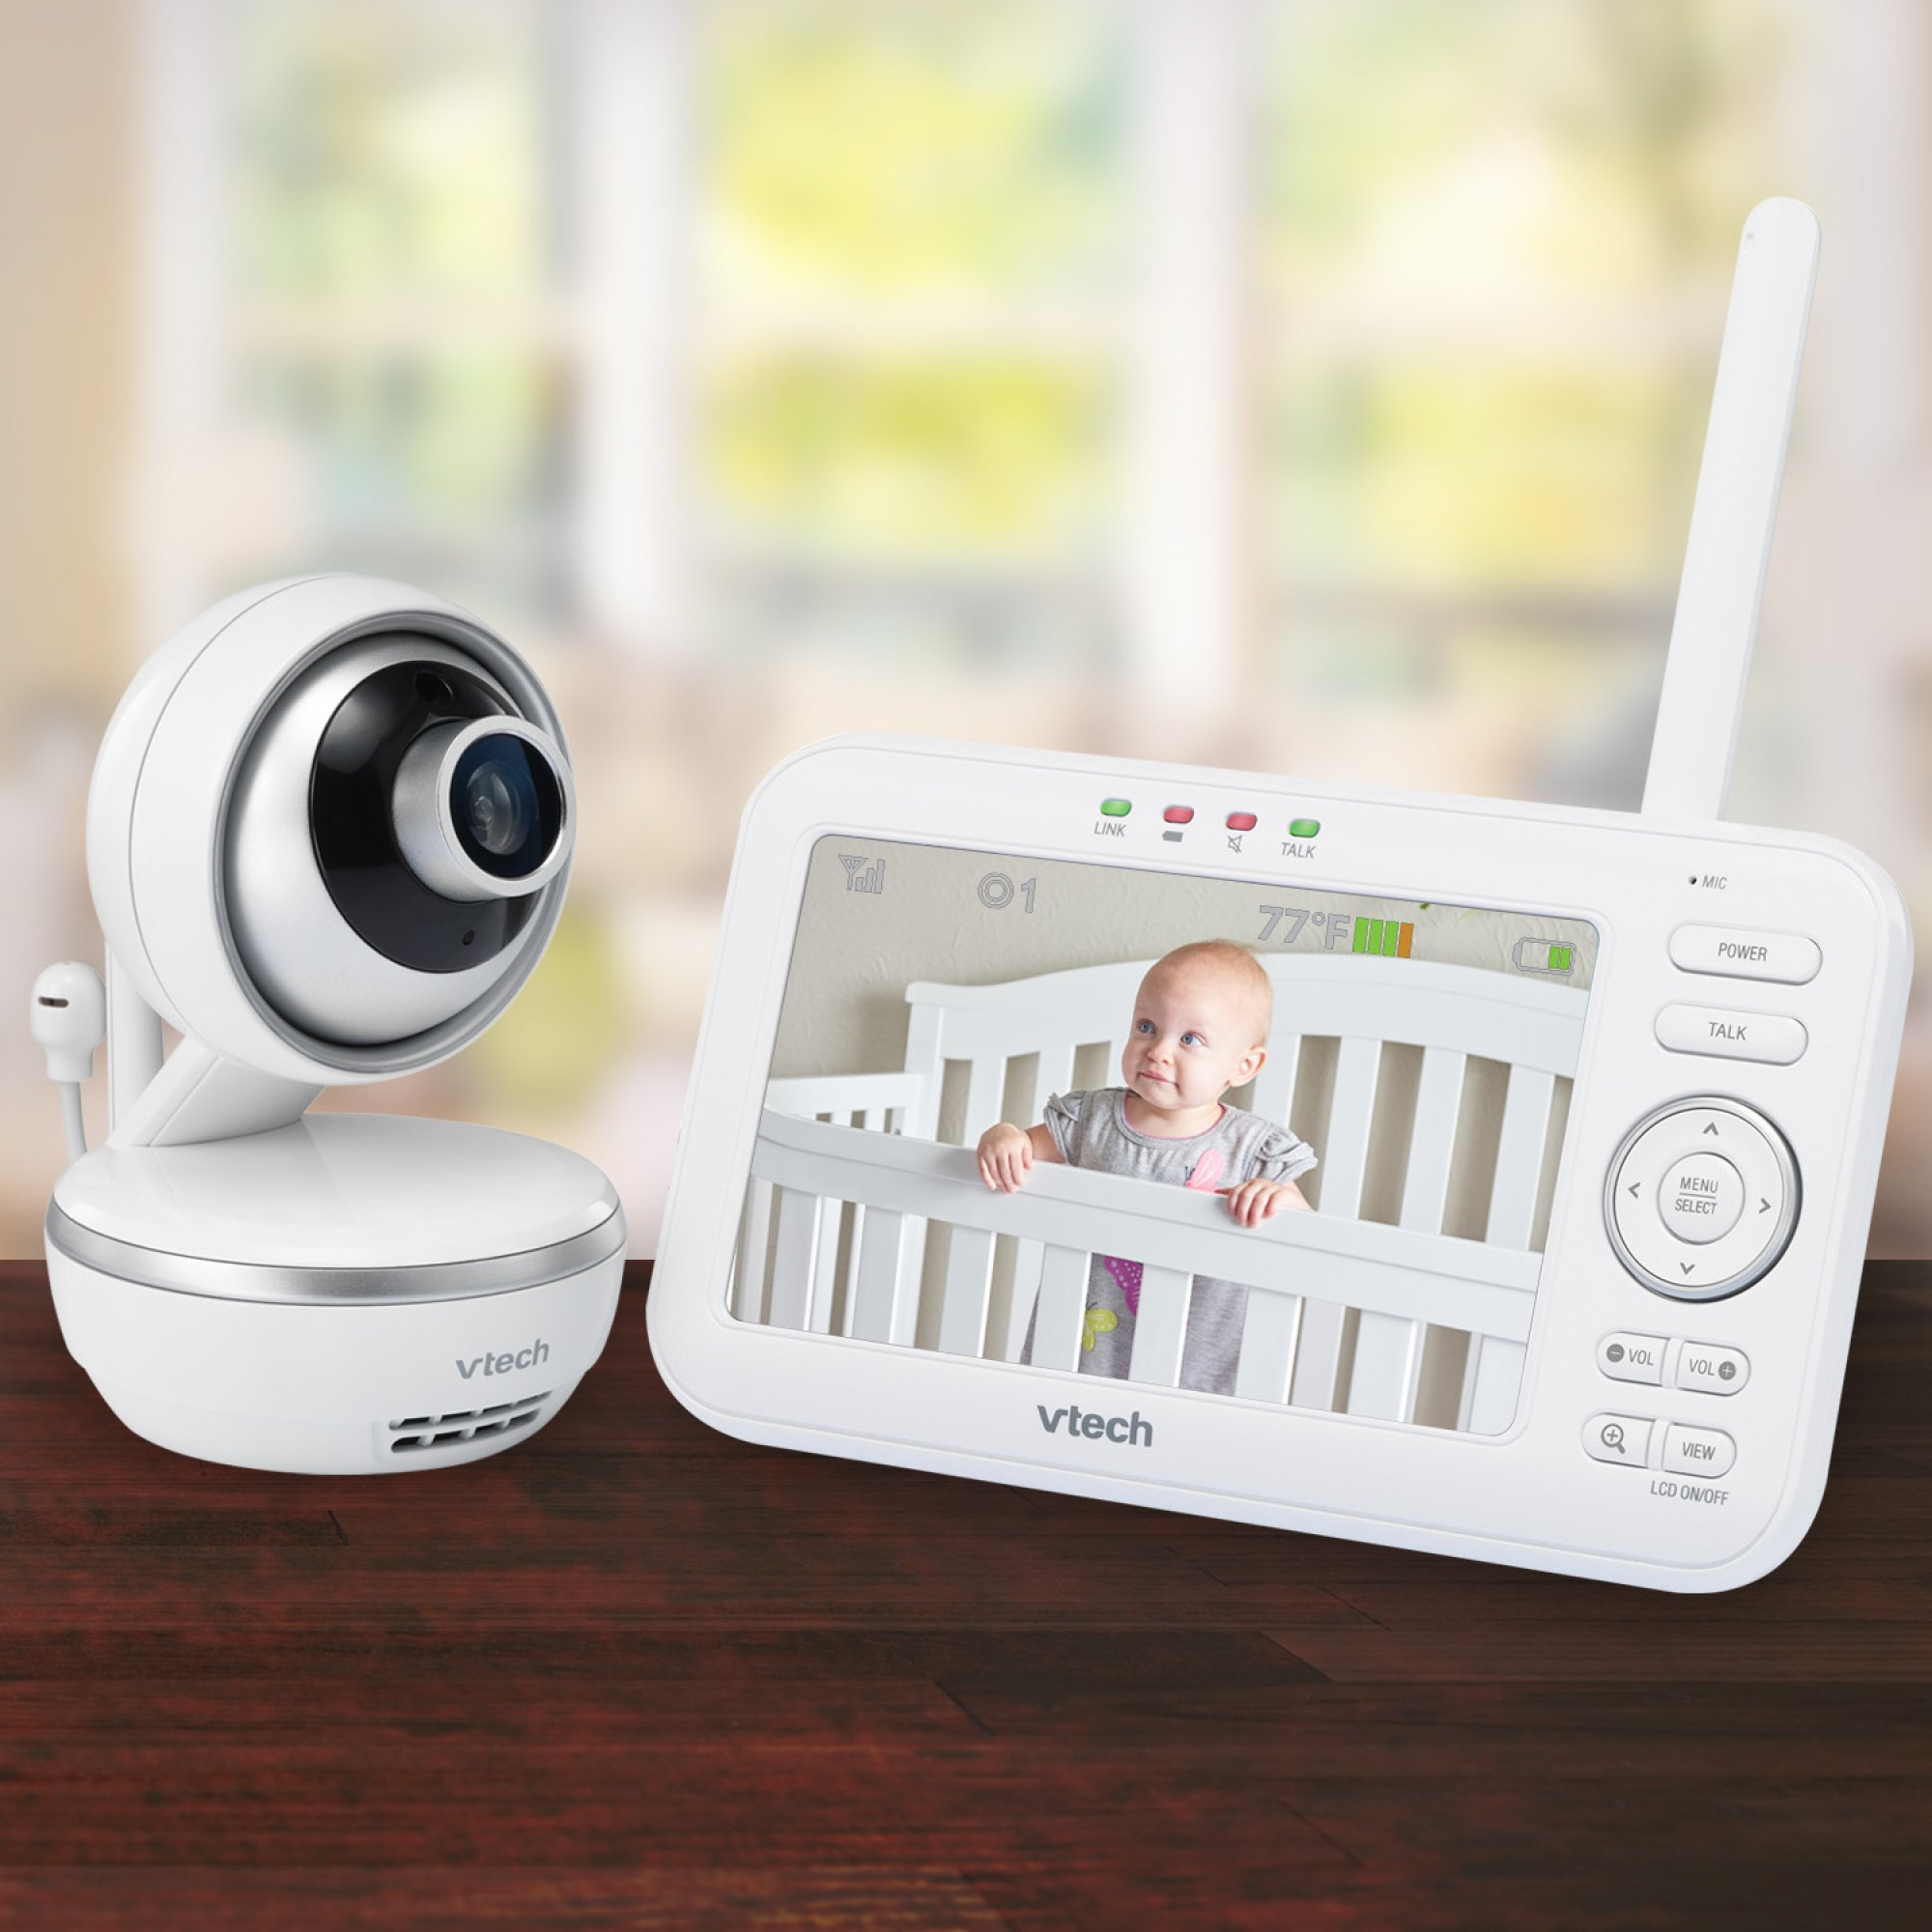 "VTech VM5261 5"" Digital Video Baby Monitor with Pan & Tilt Camera, Wide-Angle Lens and Standard Lens, White by VTech (Image #10)"